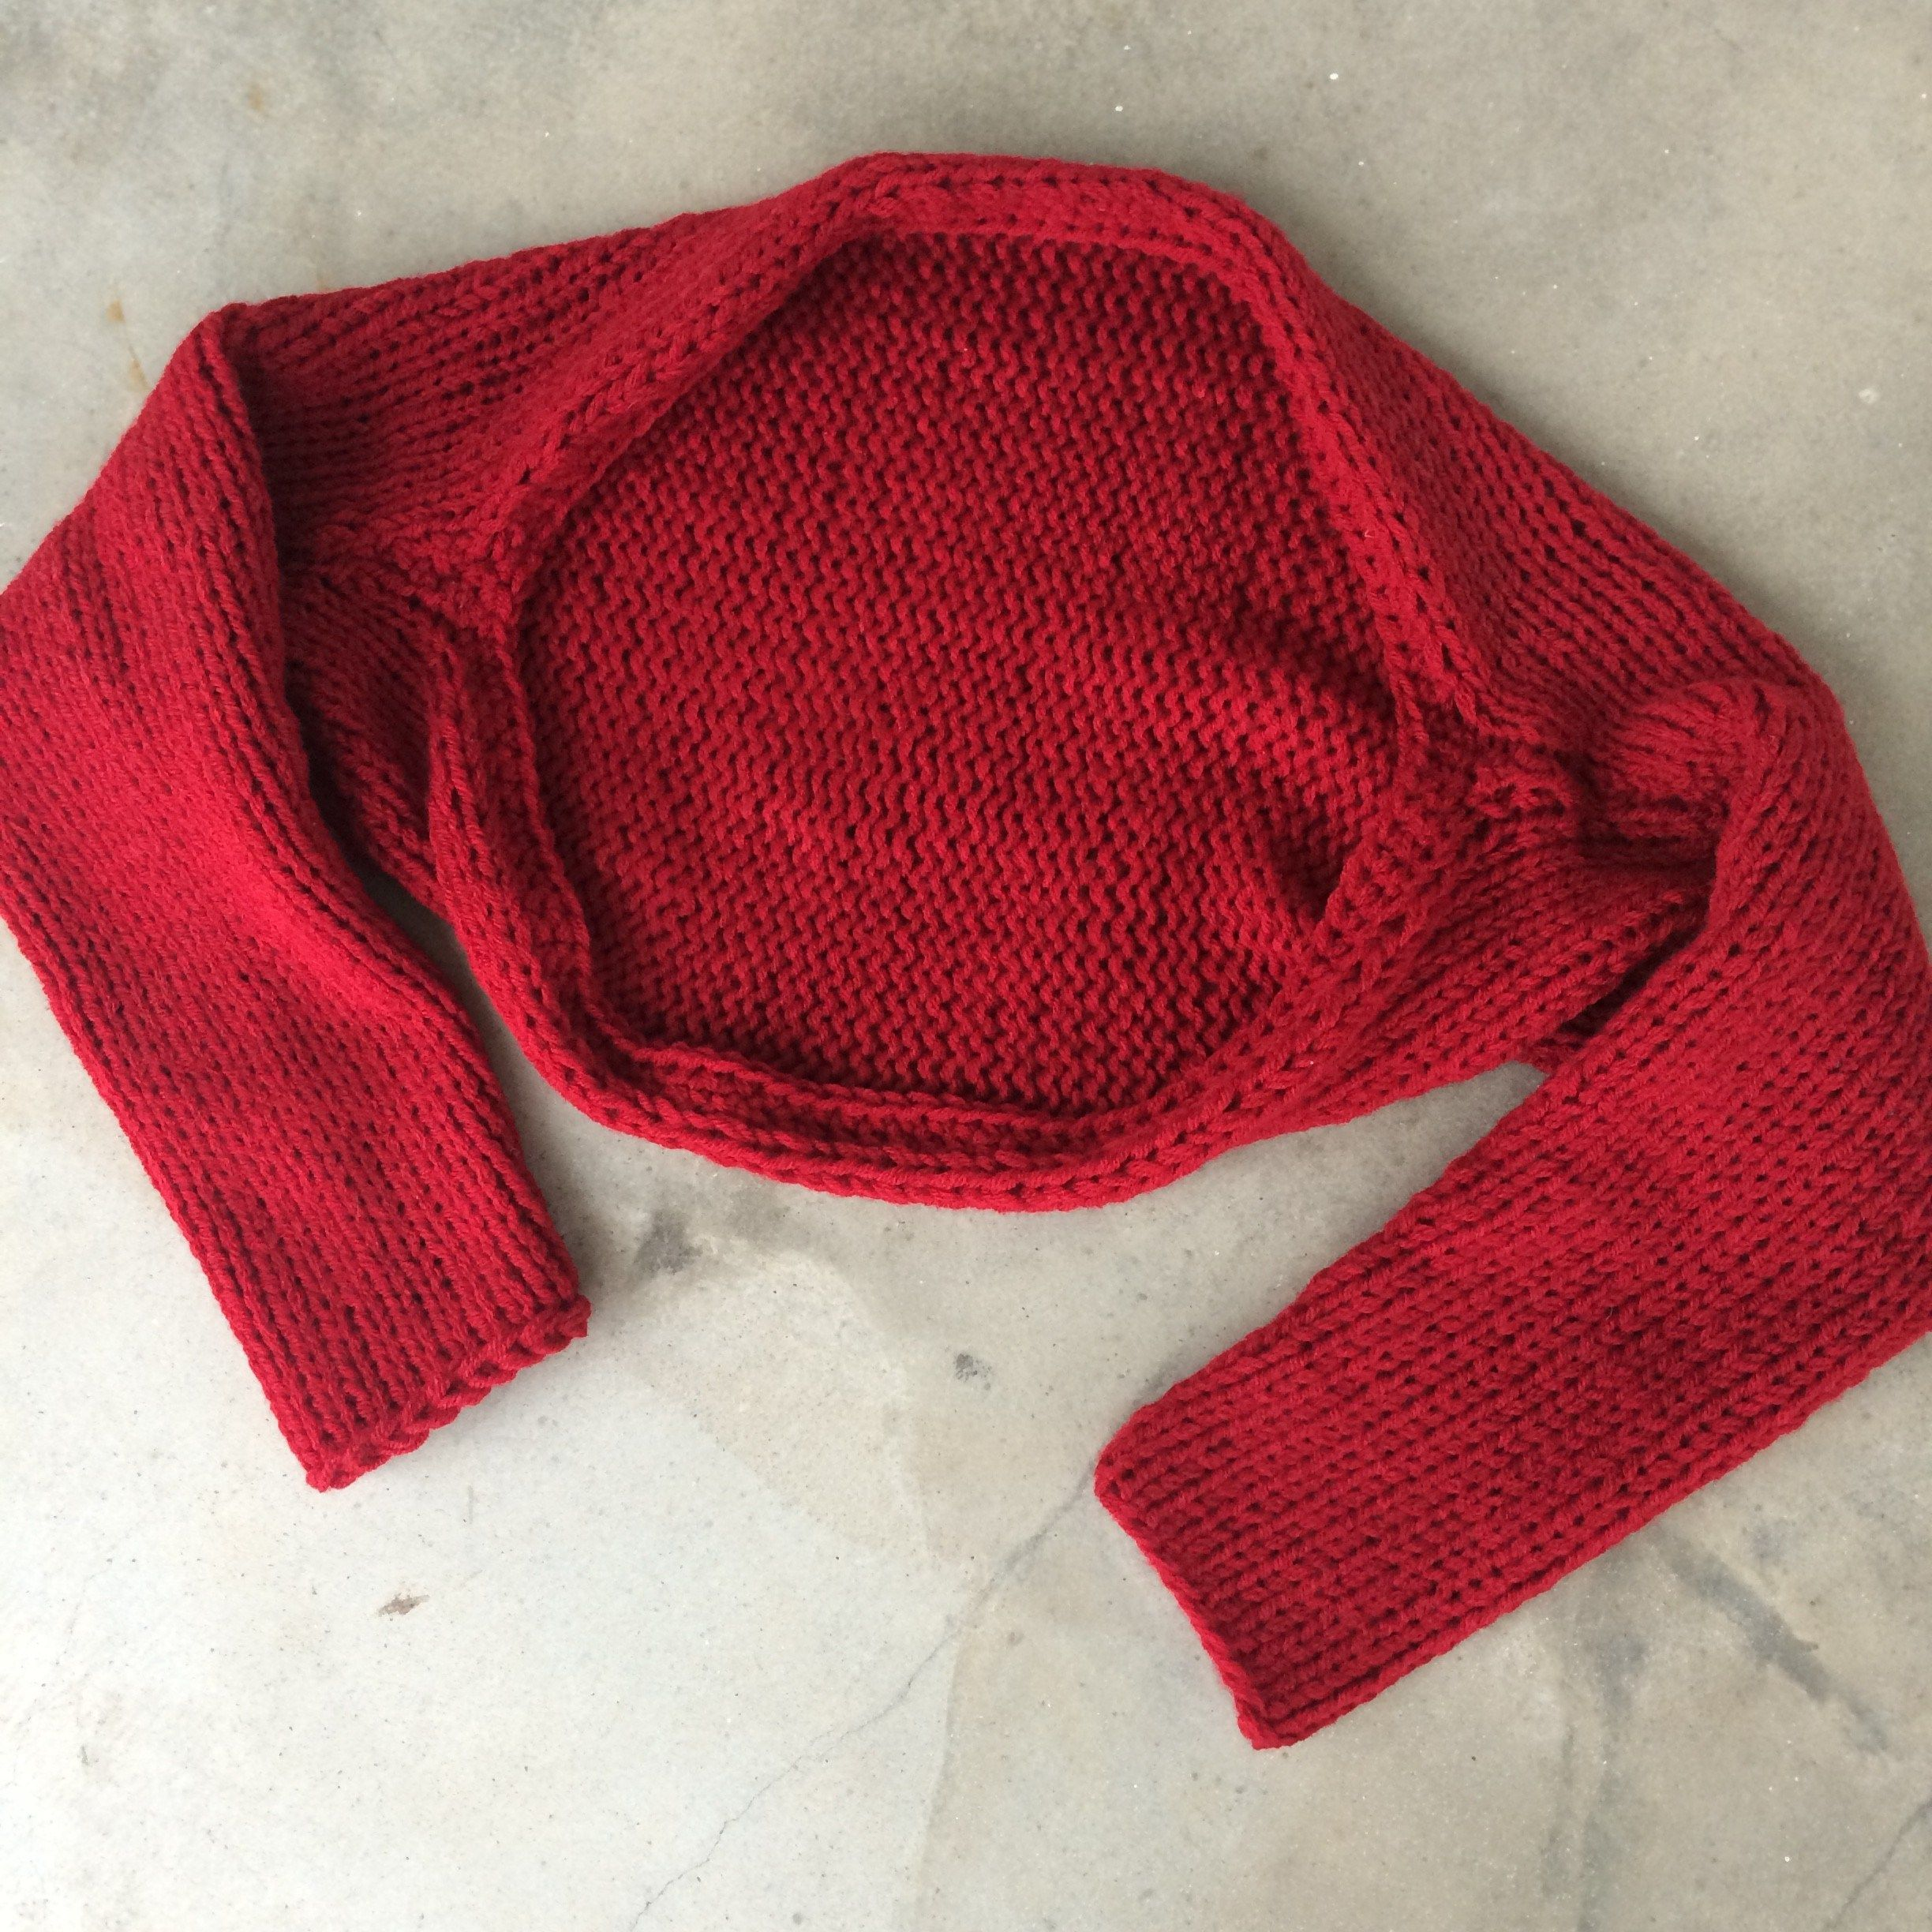 Simple Knitted Shrug | Stricken, Stricken häkeln und Strick